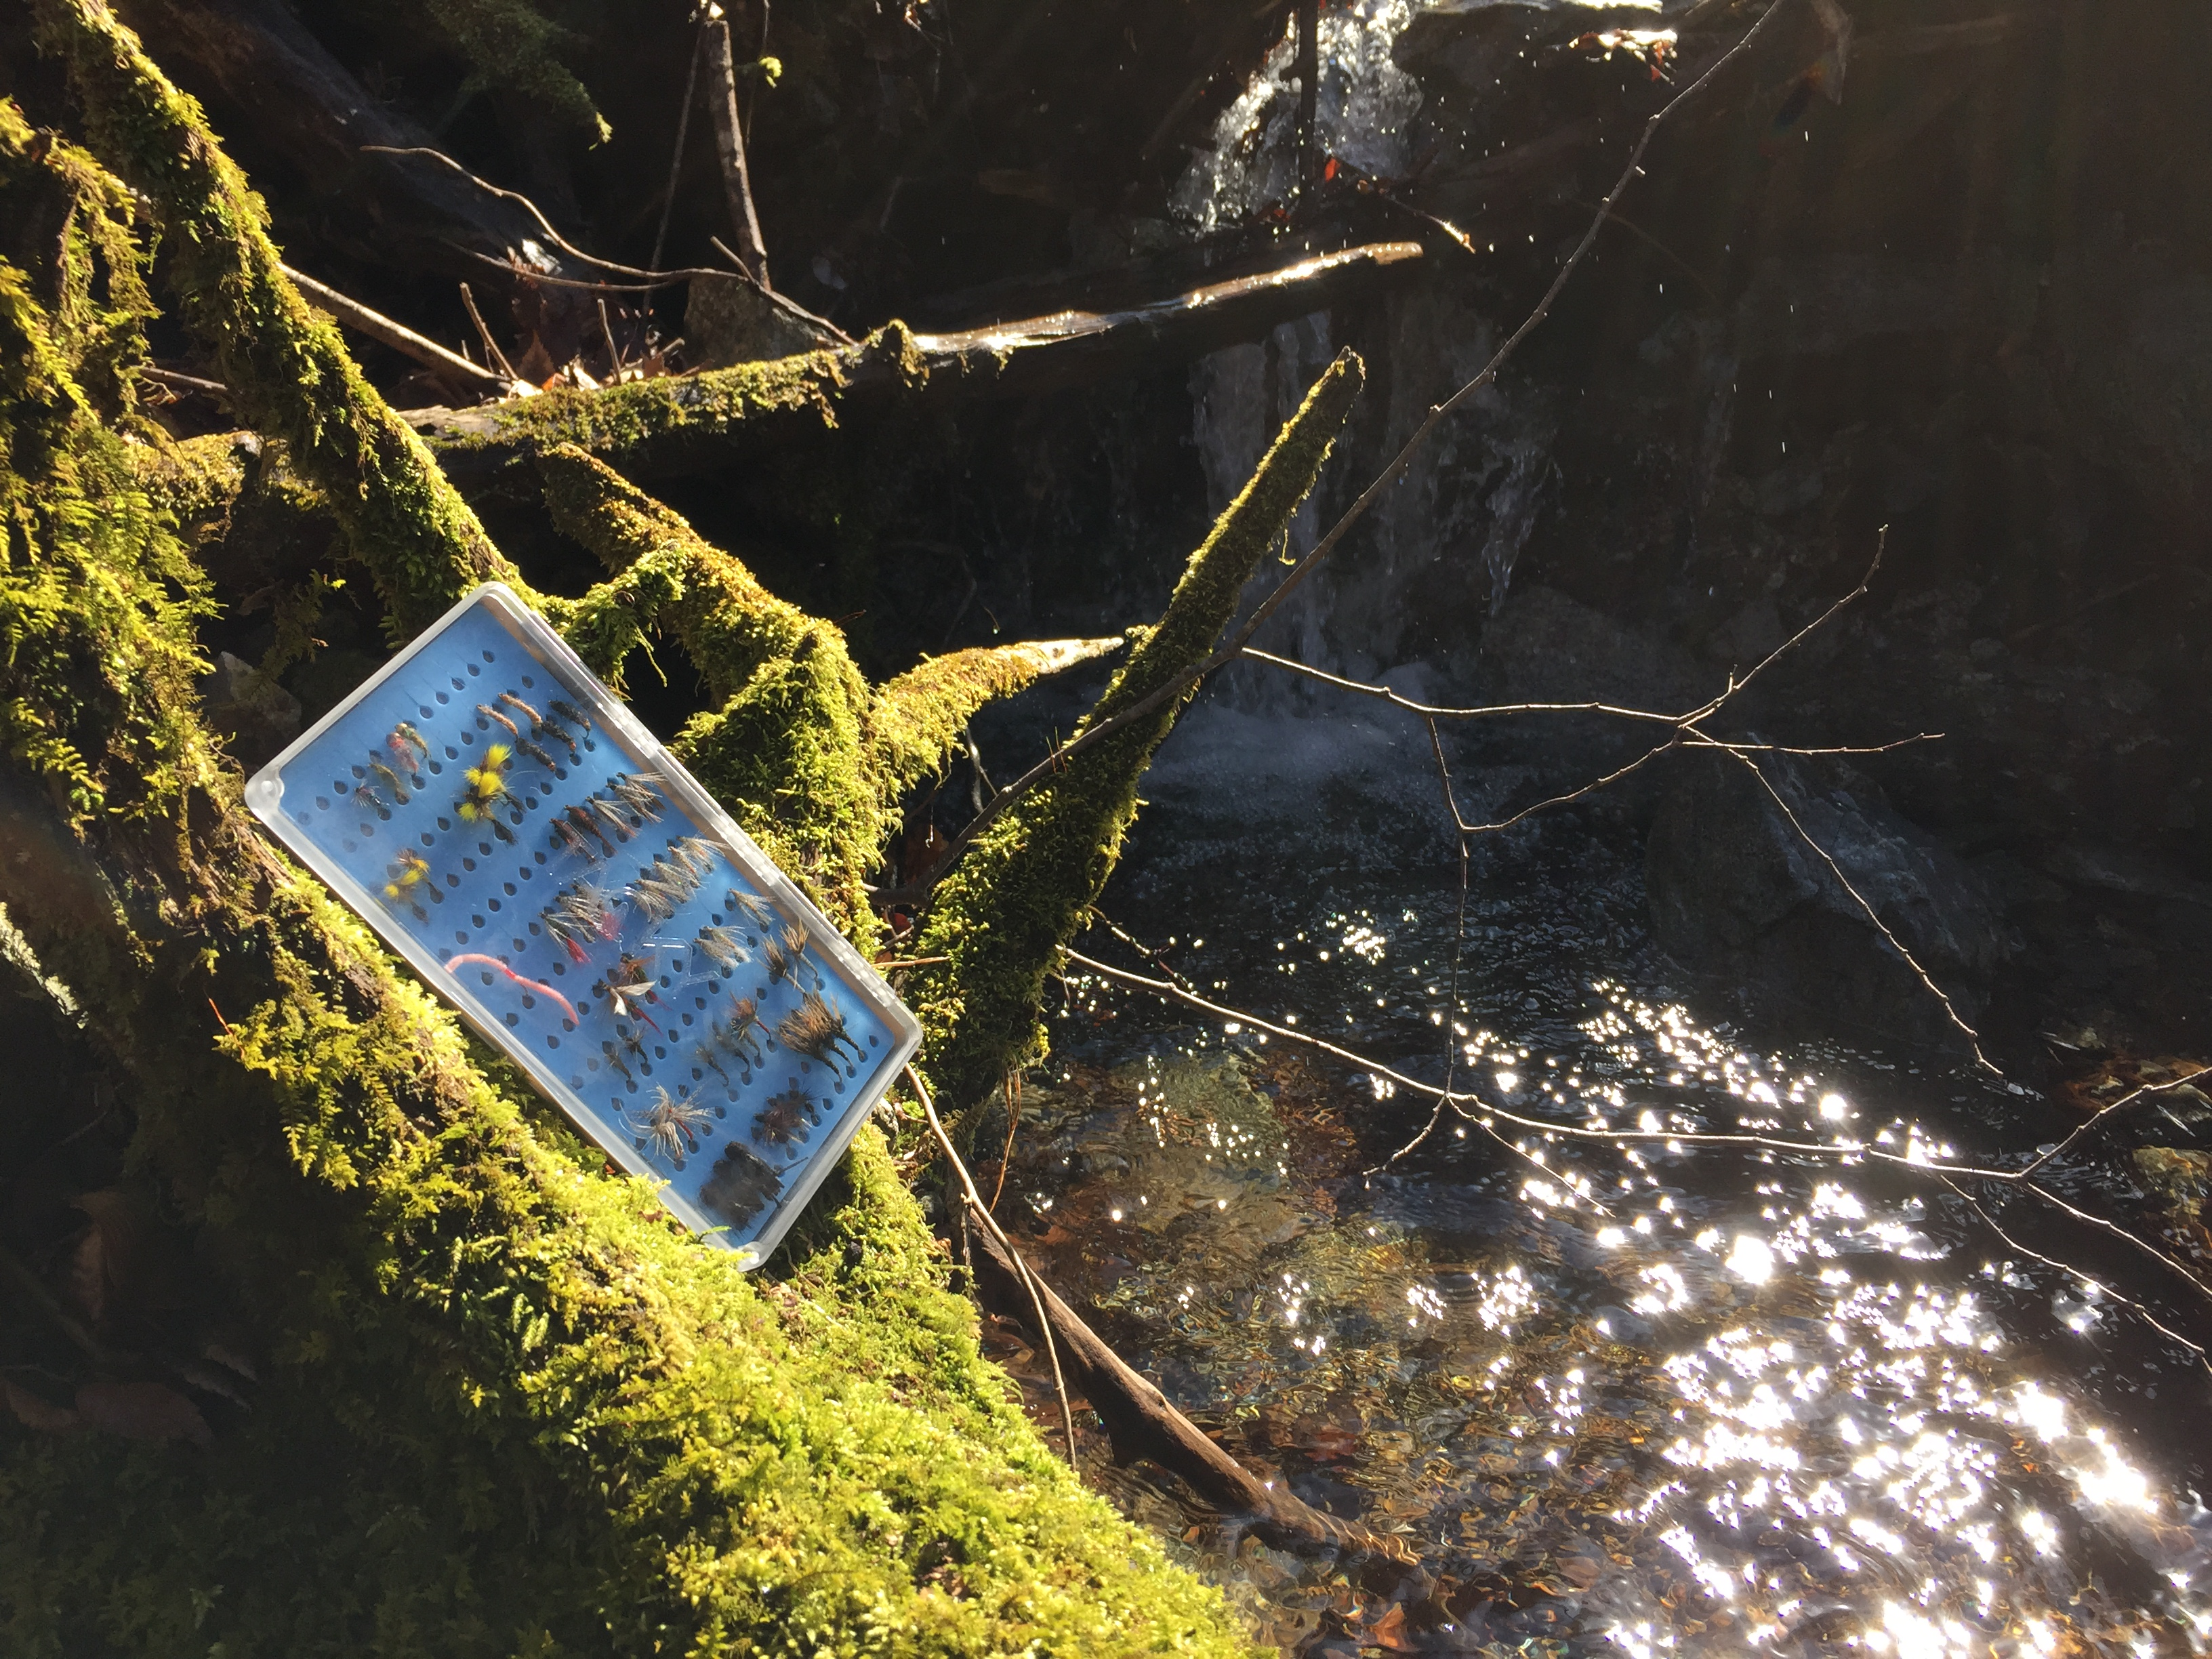 Tacky fly box for fly fishing review seattle backpackers for Fly fishing box